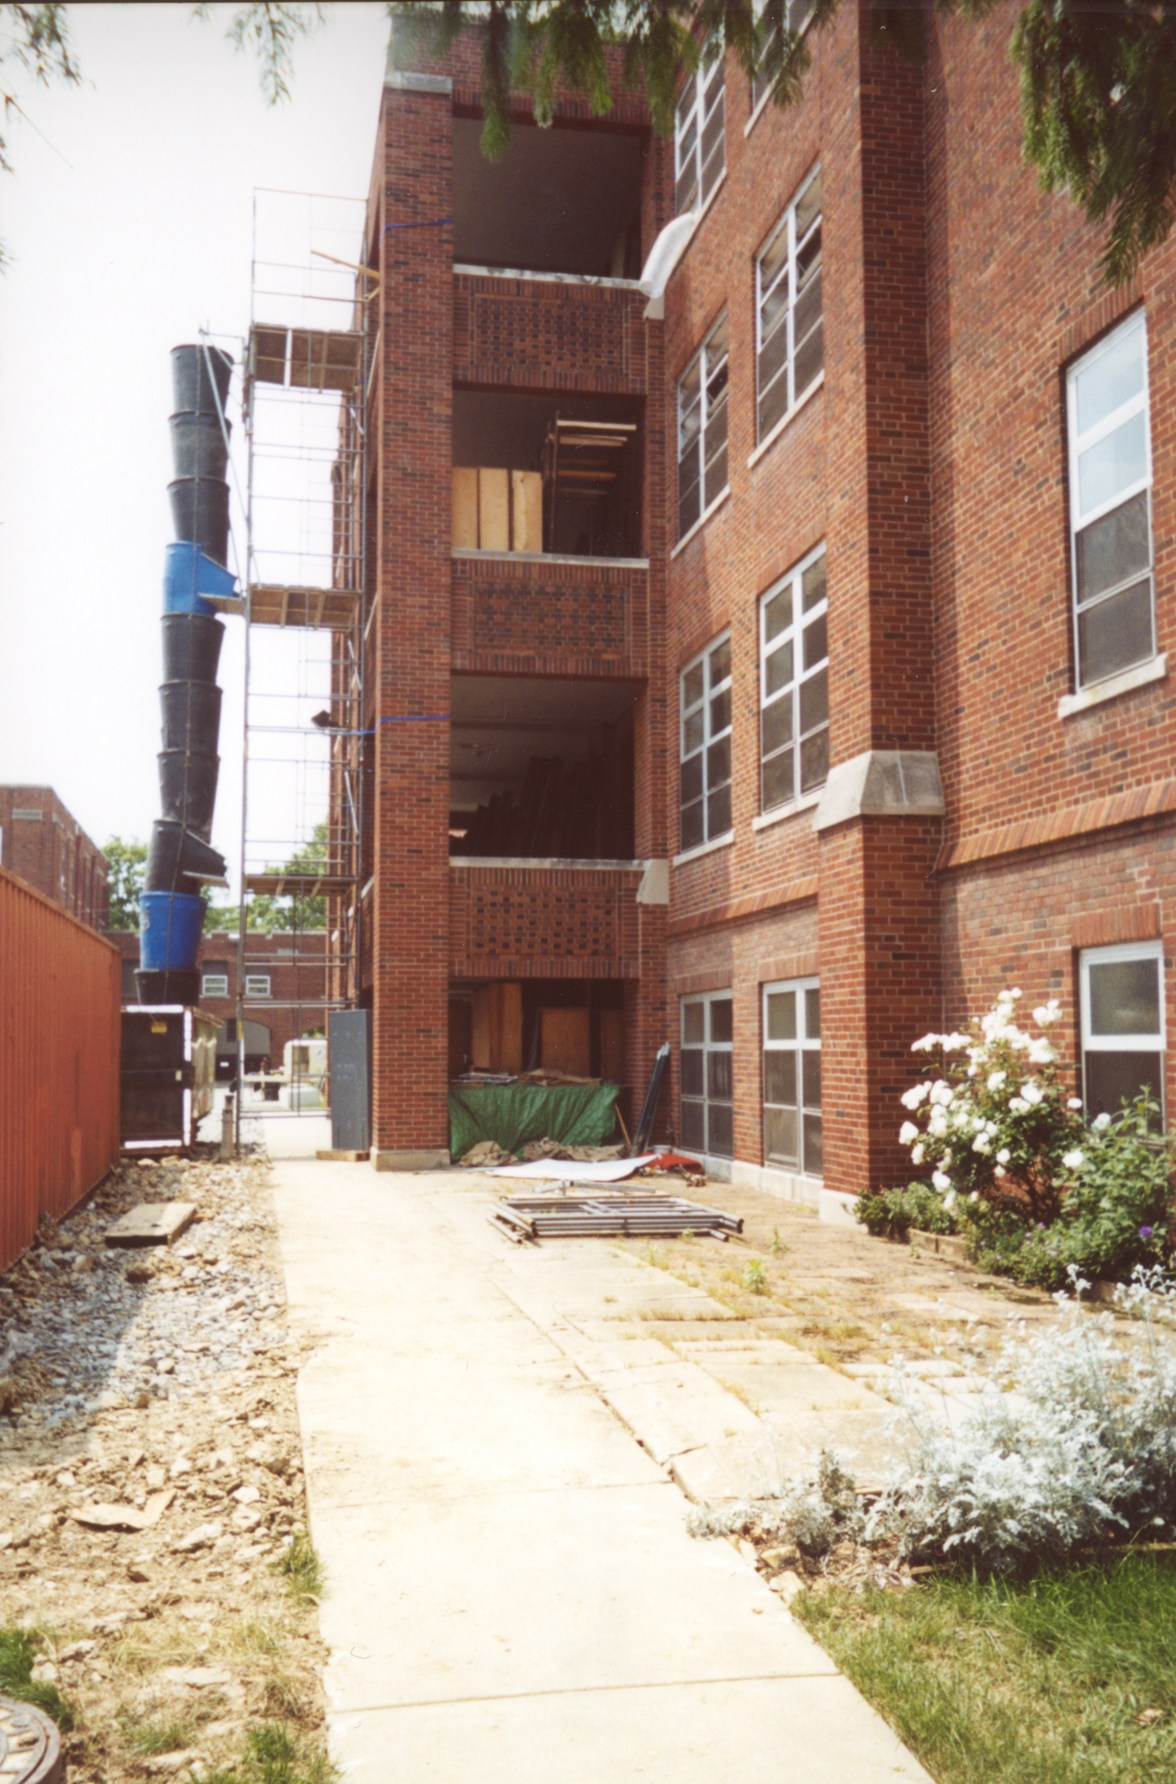 Construction on the OLSH school building in 2003